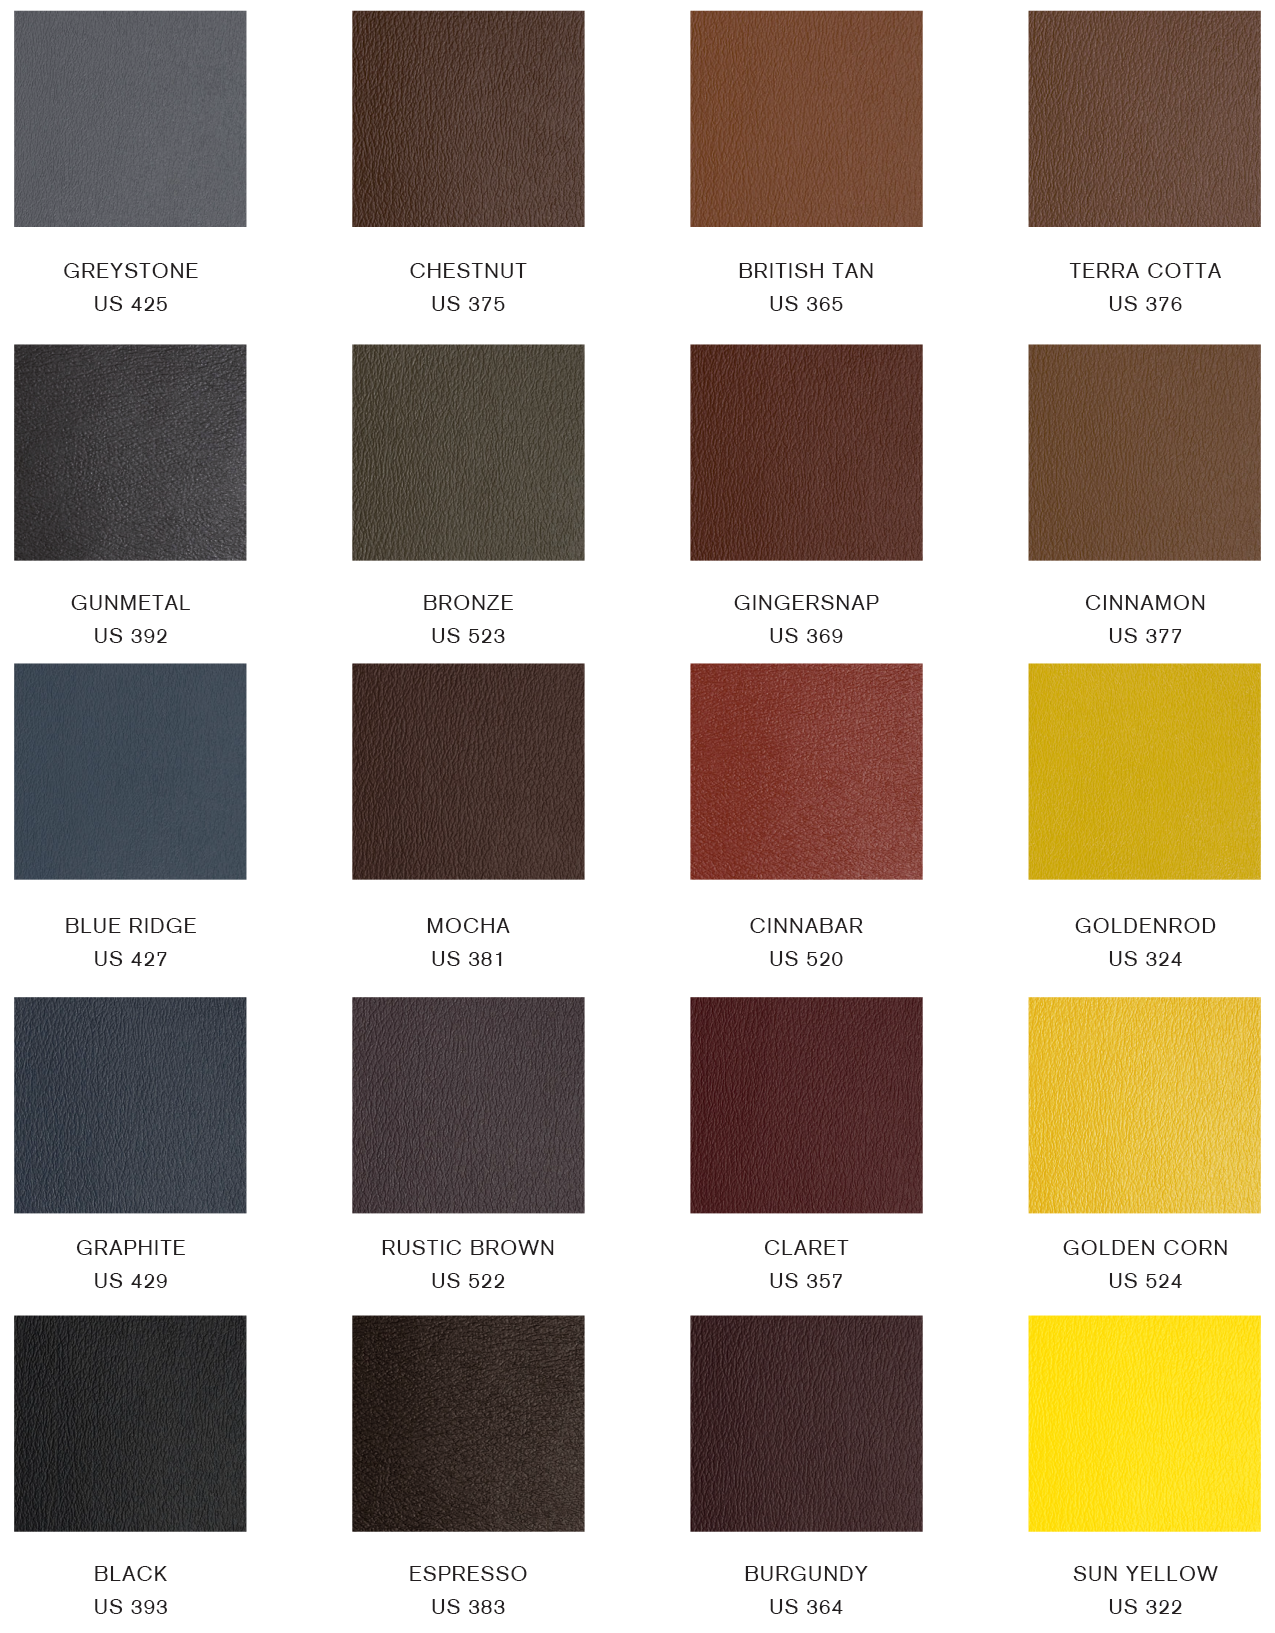 Upholstery swatch chart gratz pilates industries download swatch chart nvjuhfo Choice Image